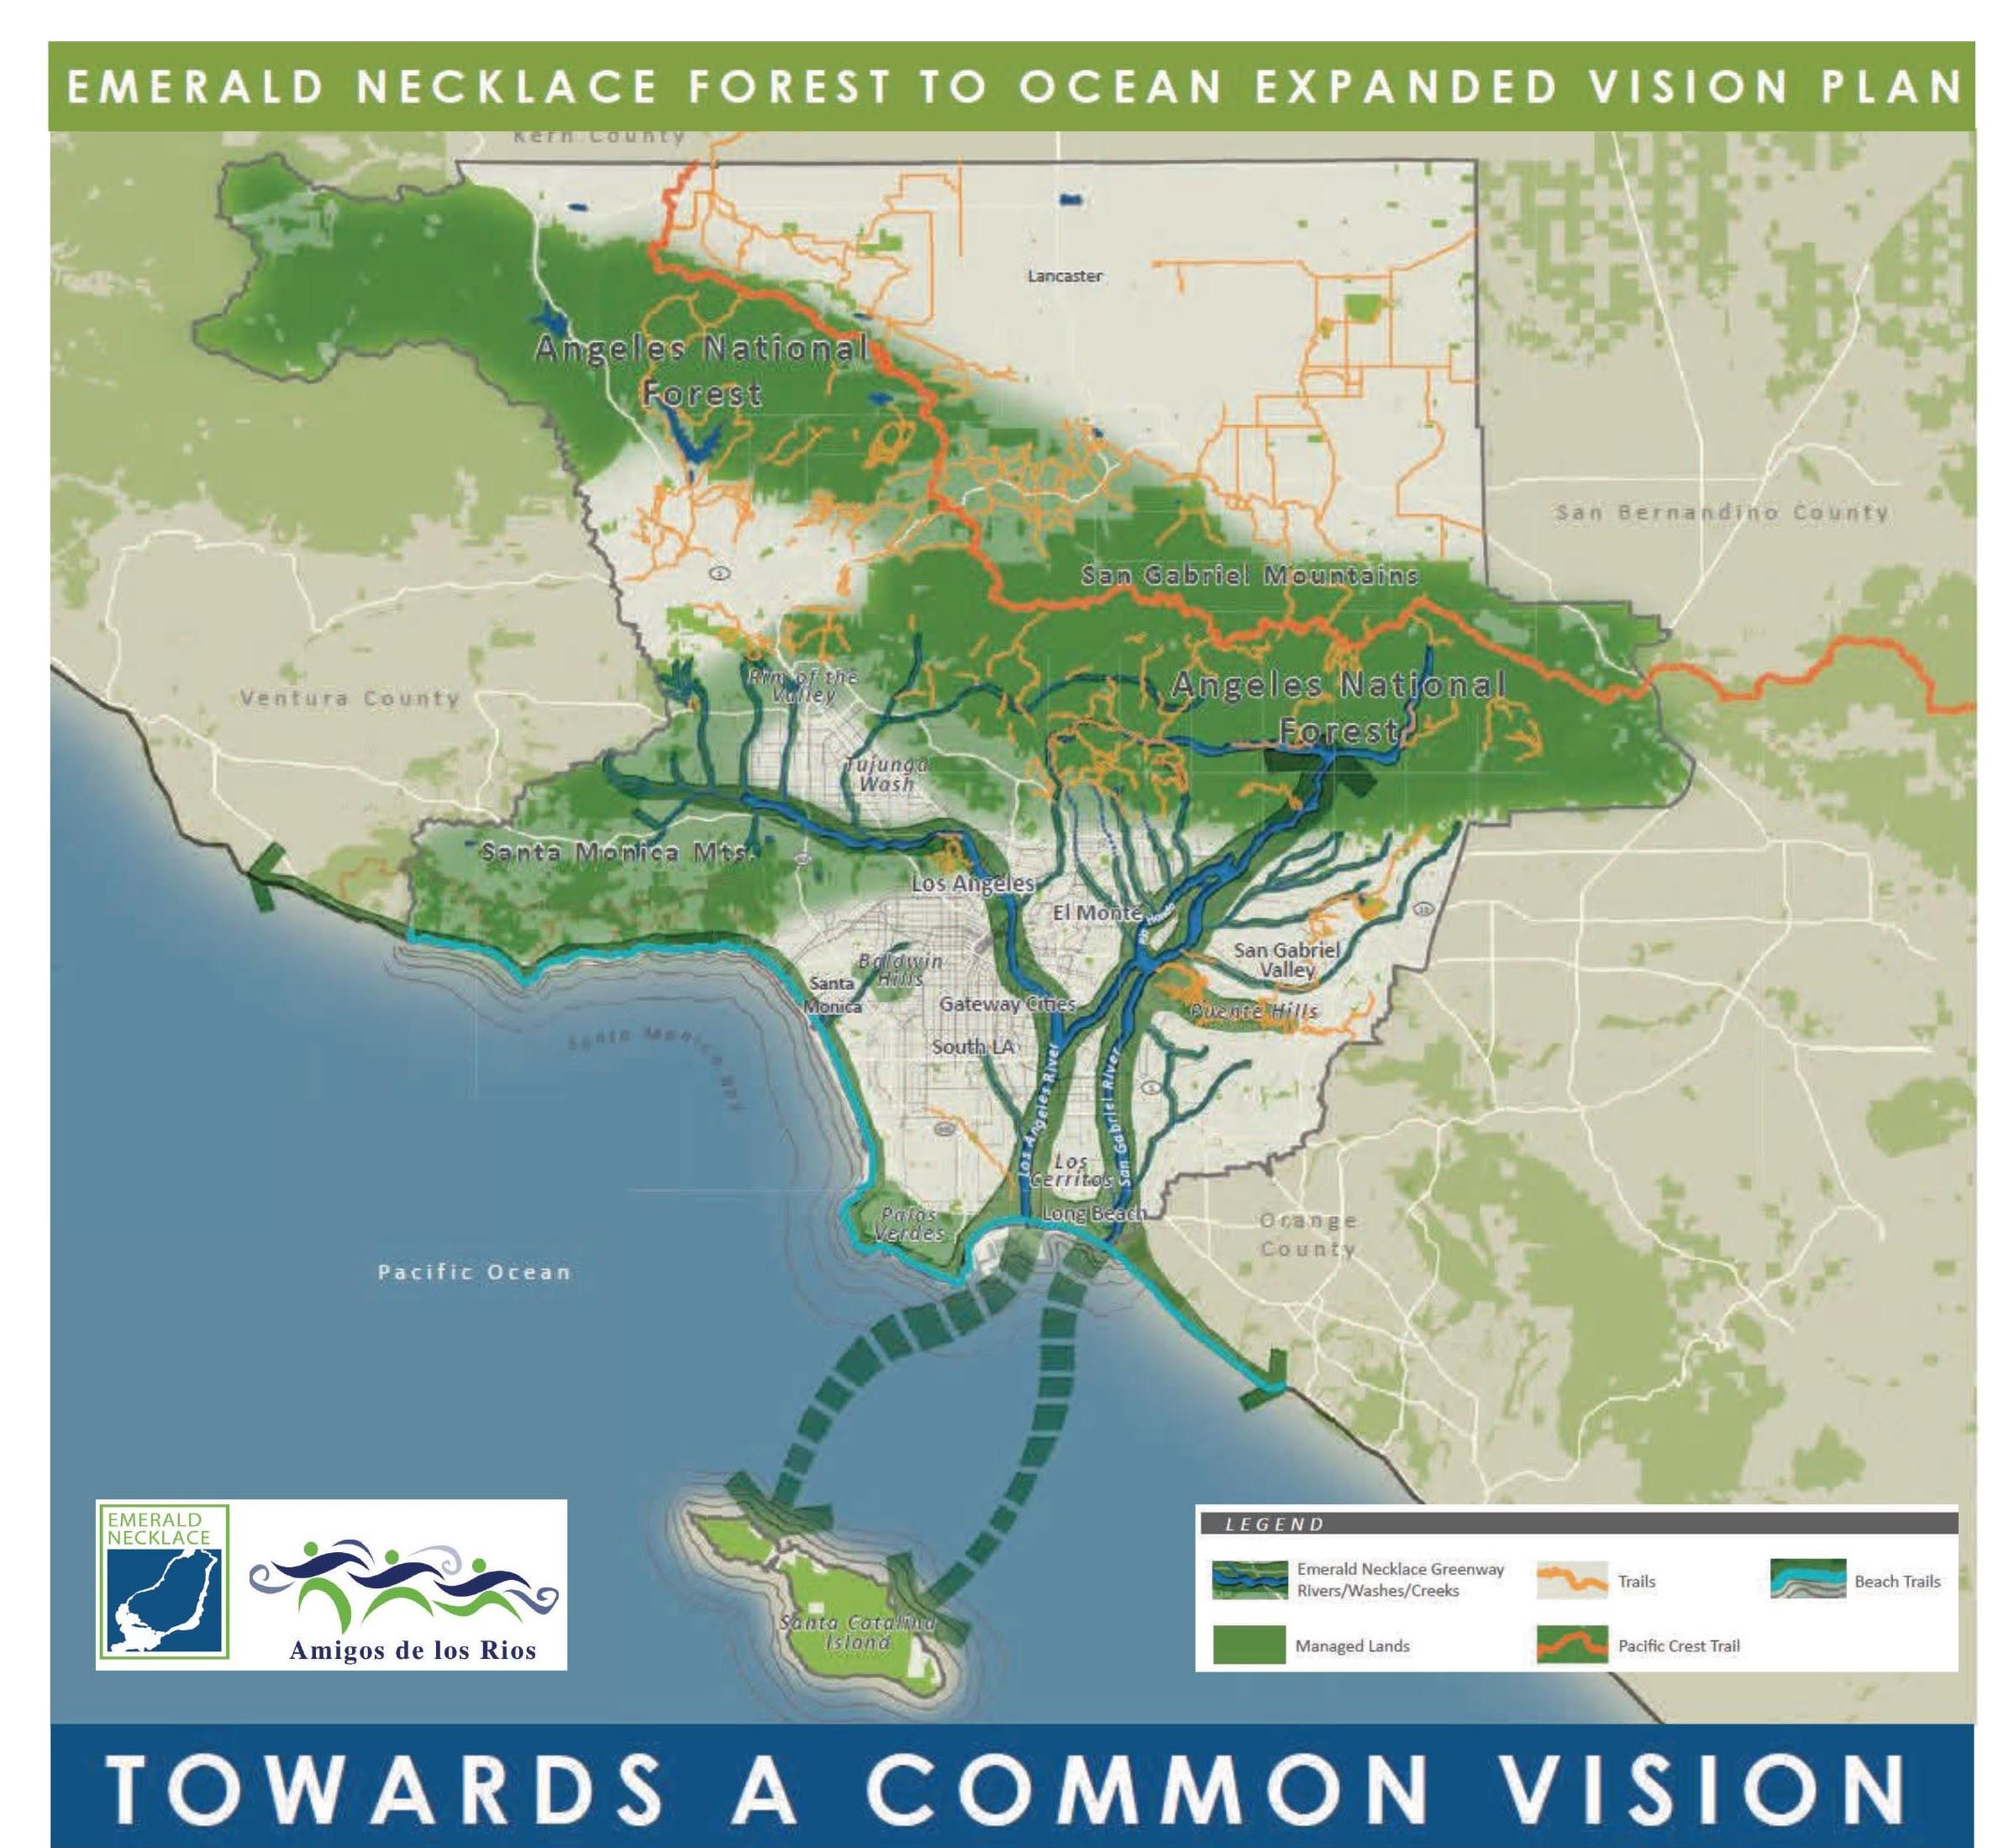 Emerald Necklace Forest To Ocean Vision Plan Emerald Necklace